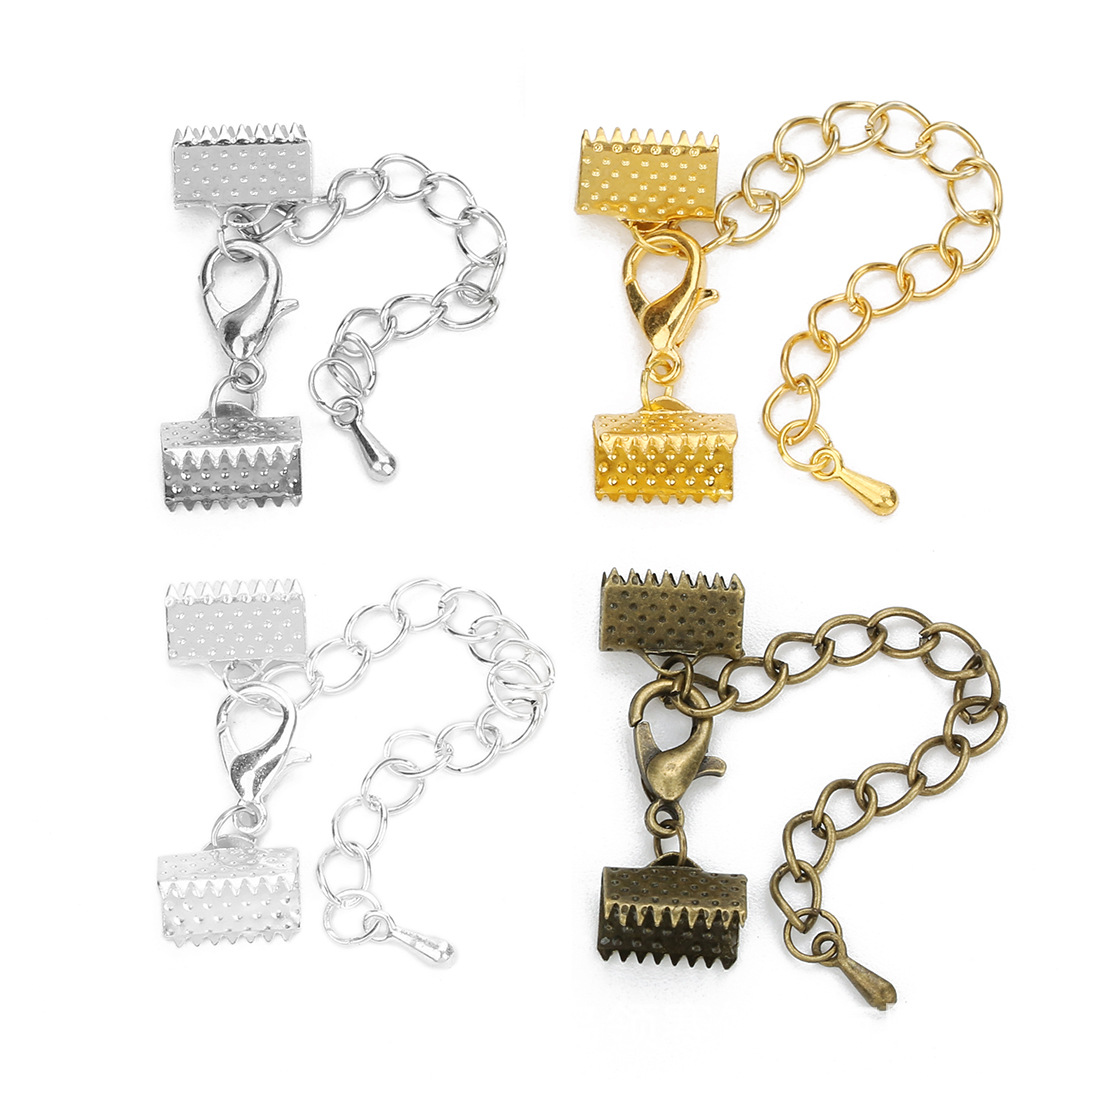 SETS Lobster Crimp Ends Extension Chain Fits 1.5-3mm Ribbon Leather Cord Wire